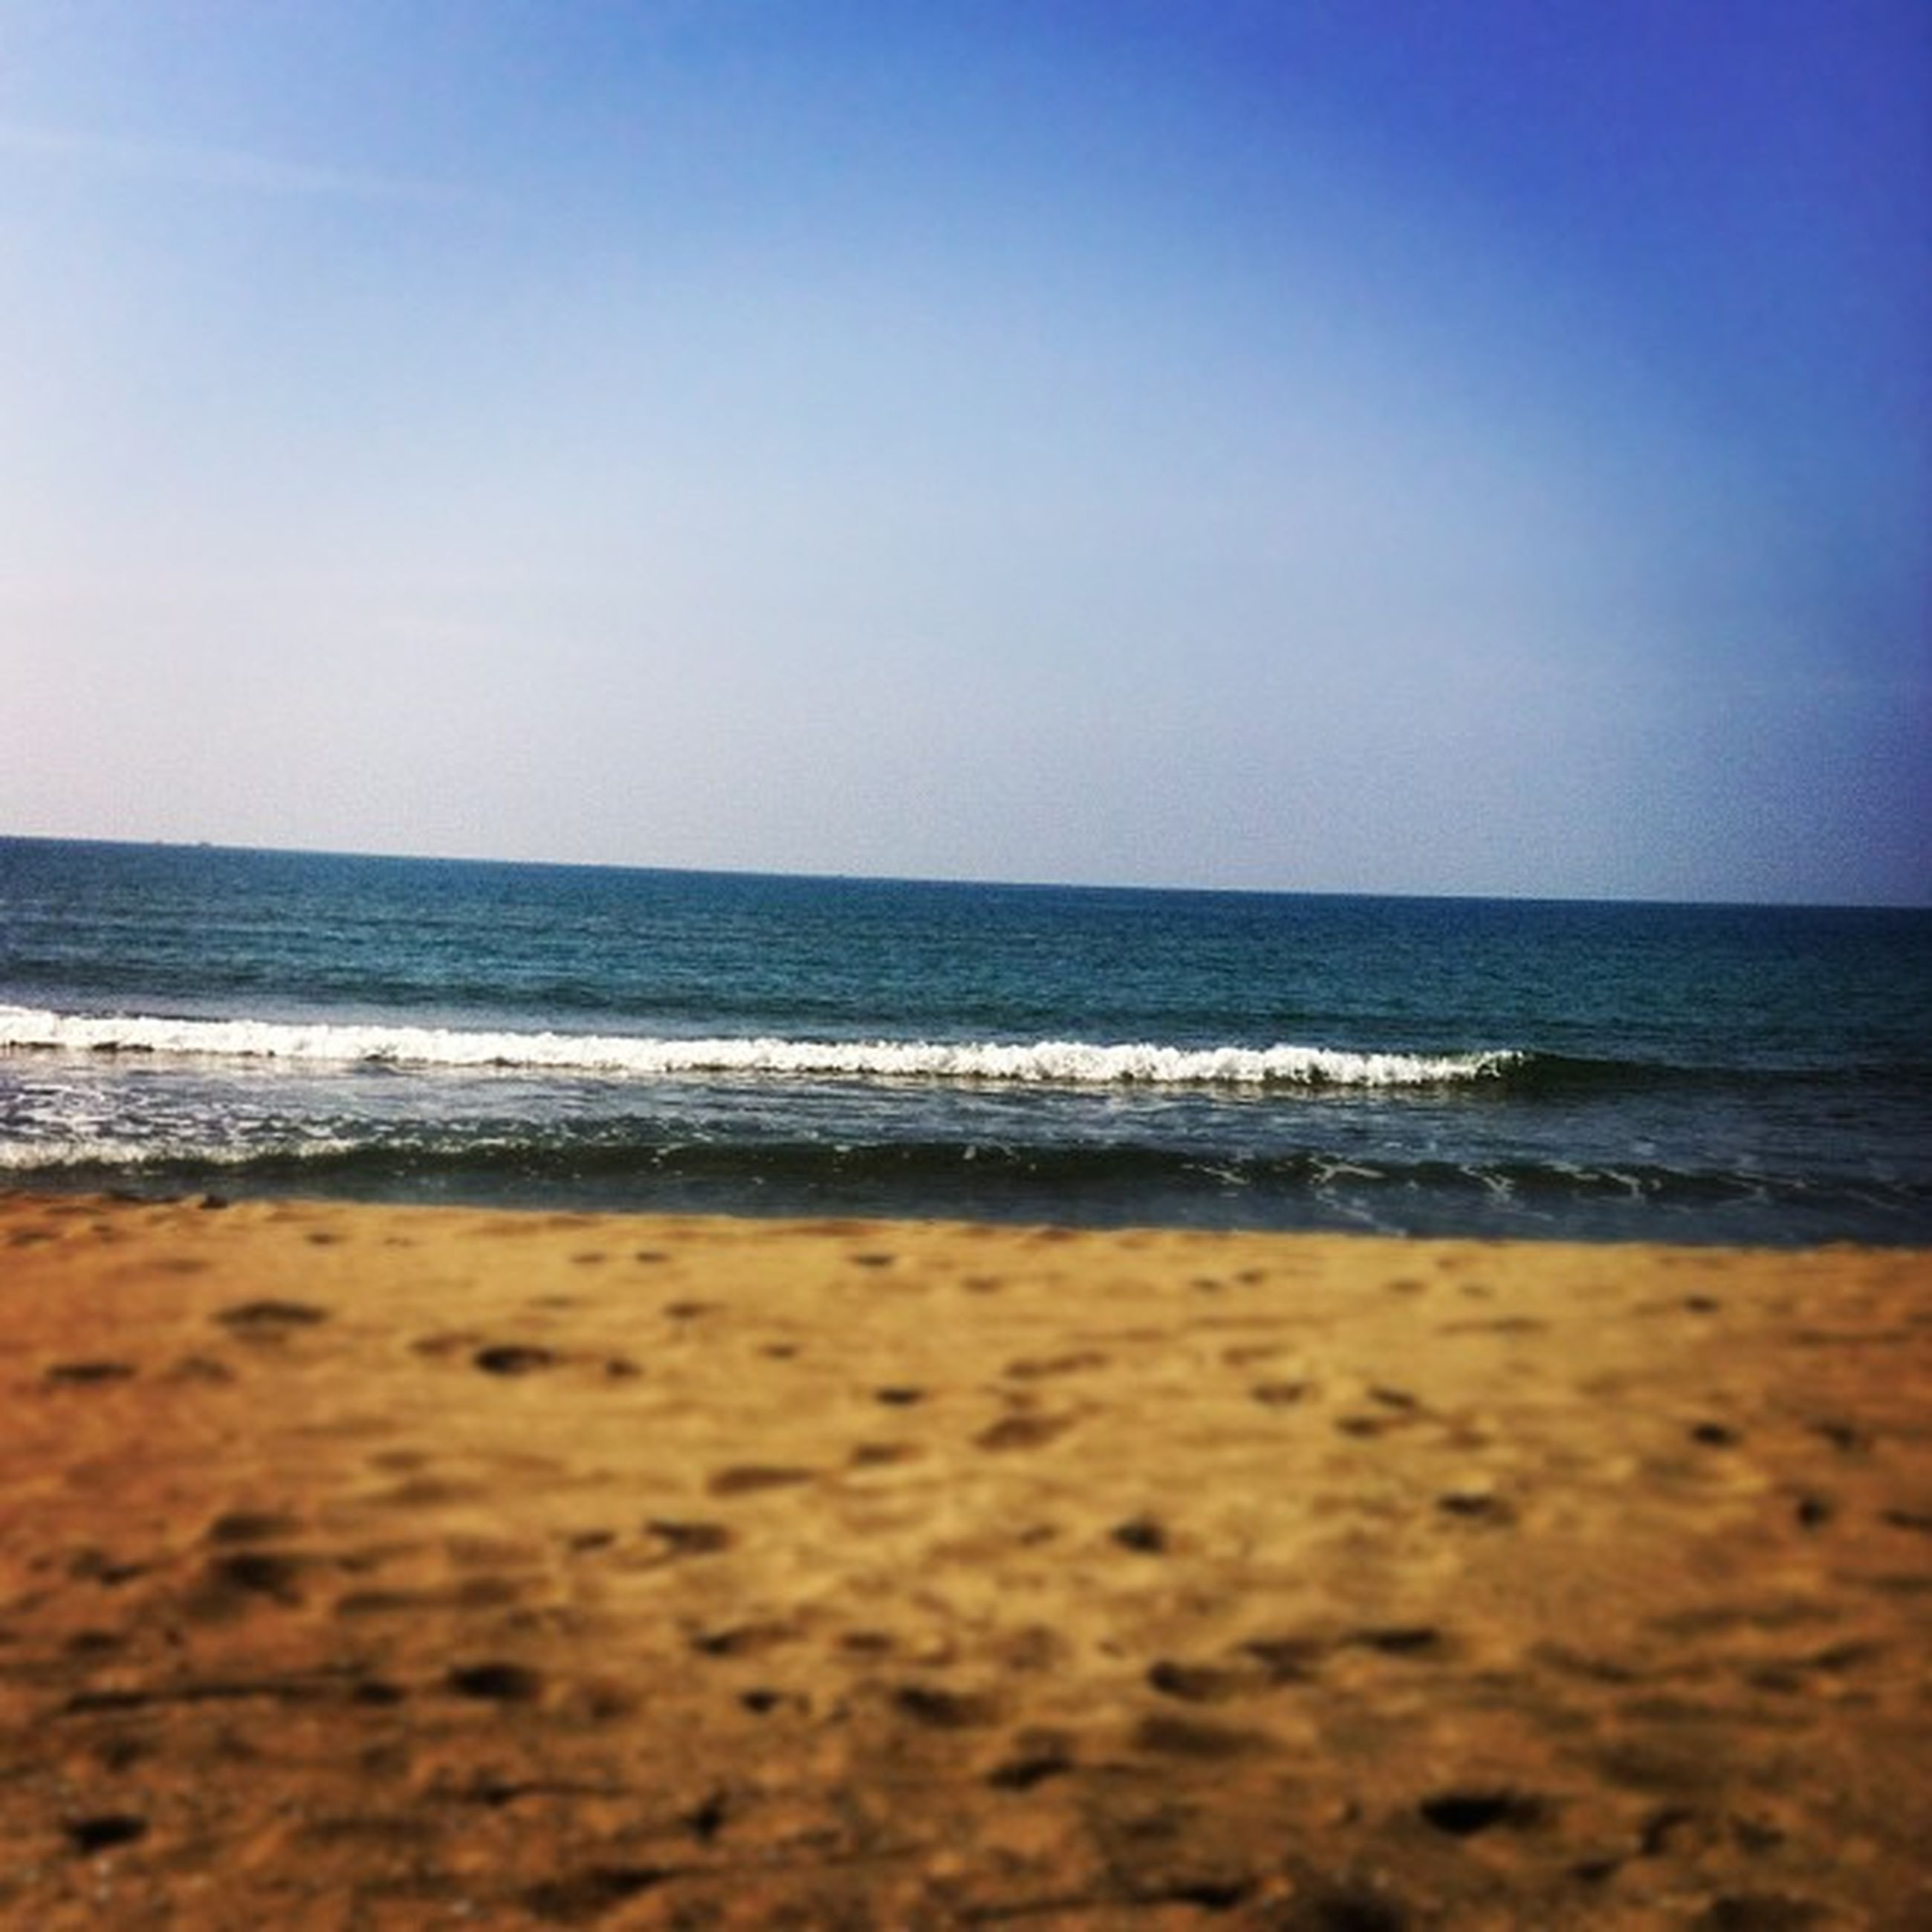 beach, sea, horizon over water, sand, clear sky, shore, water, copy space, tranquil scene, tranquility, scenics, beauty in nature, nature, blue, wave, idyllic, sky, coastline, remote, surface level